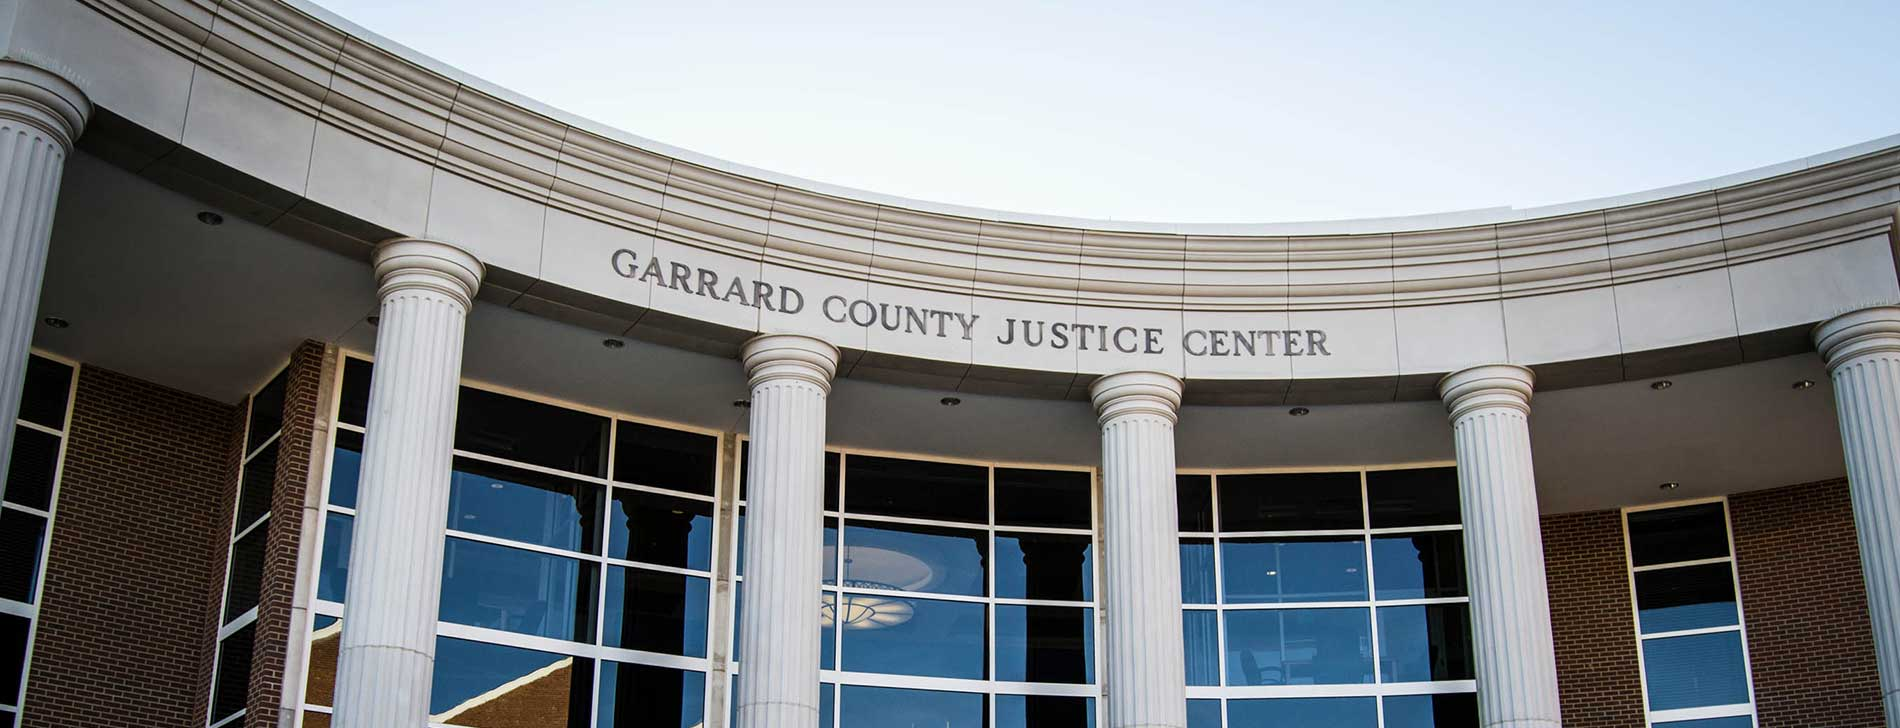 Garrard County Justice Center for Attorney's in Kentucky